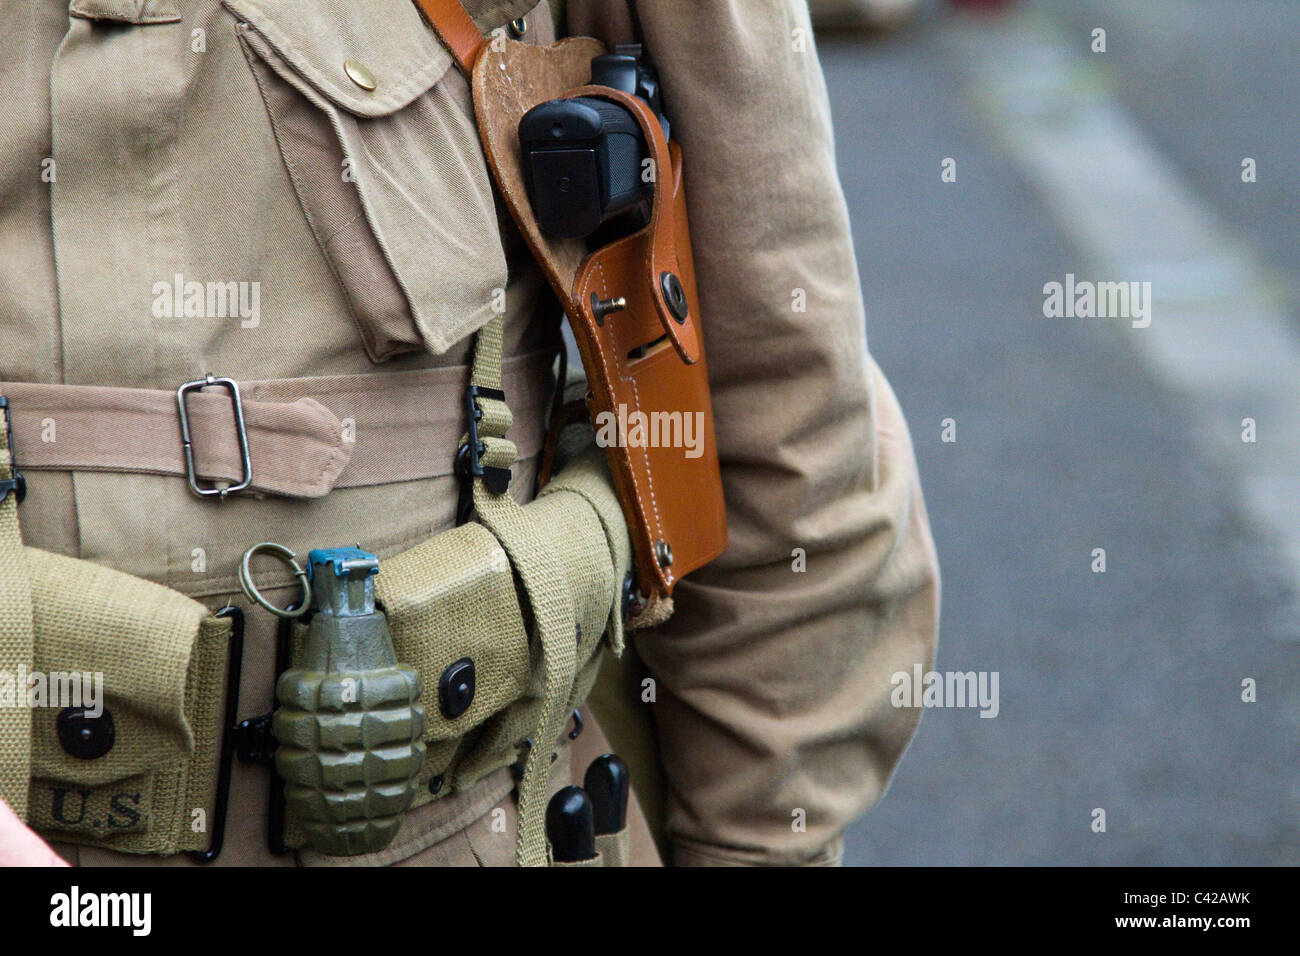 Service Guns Arms Stockfotos & Service Guns Arms Bilder - Alamy